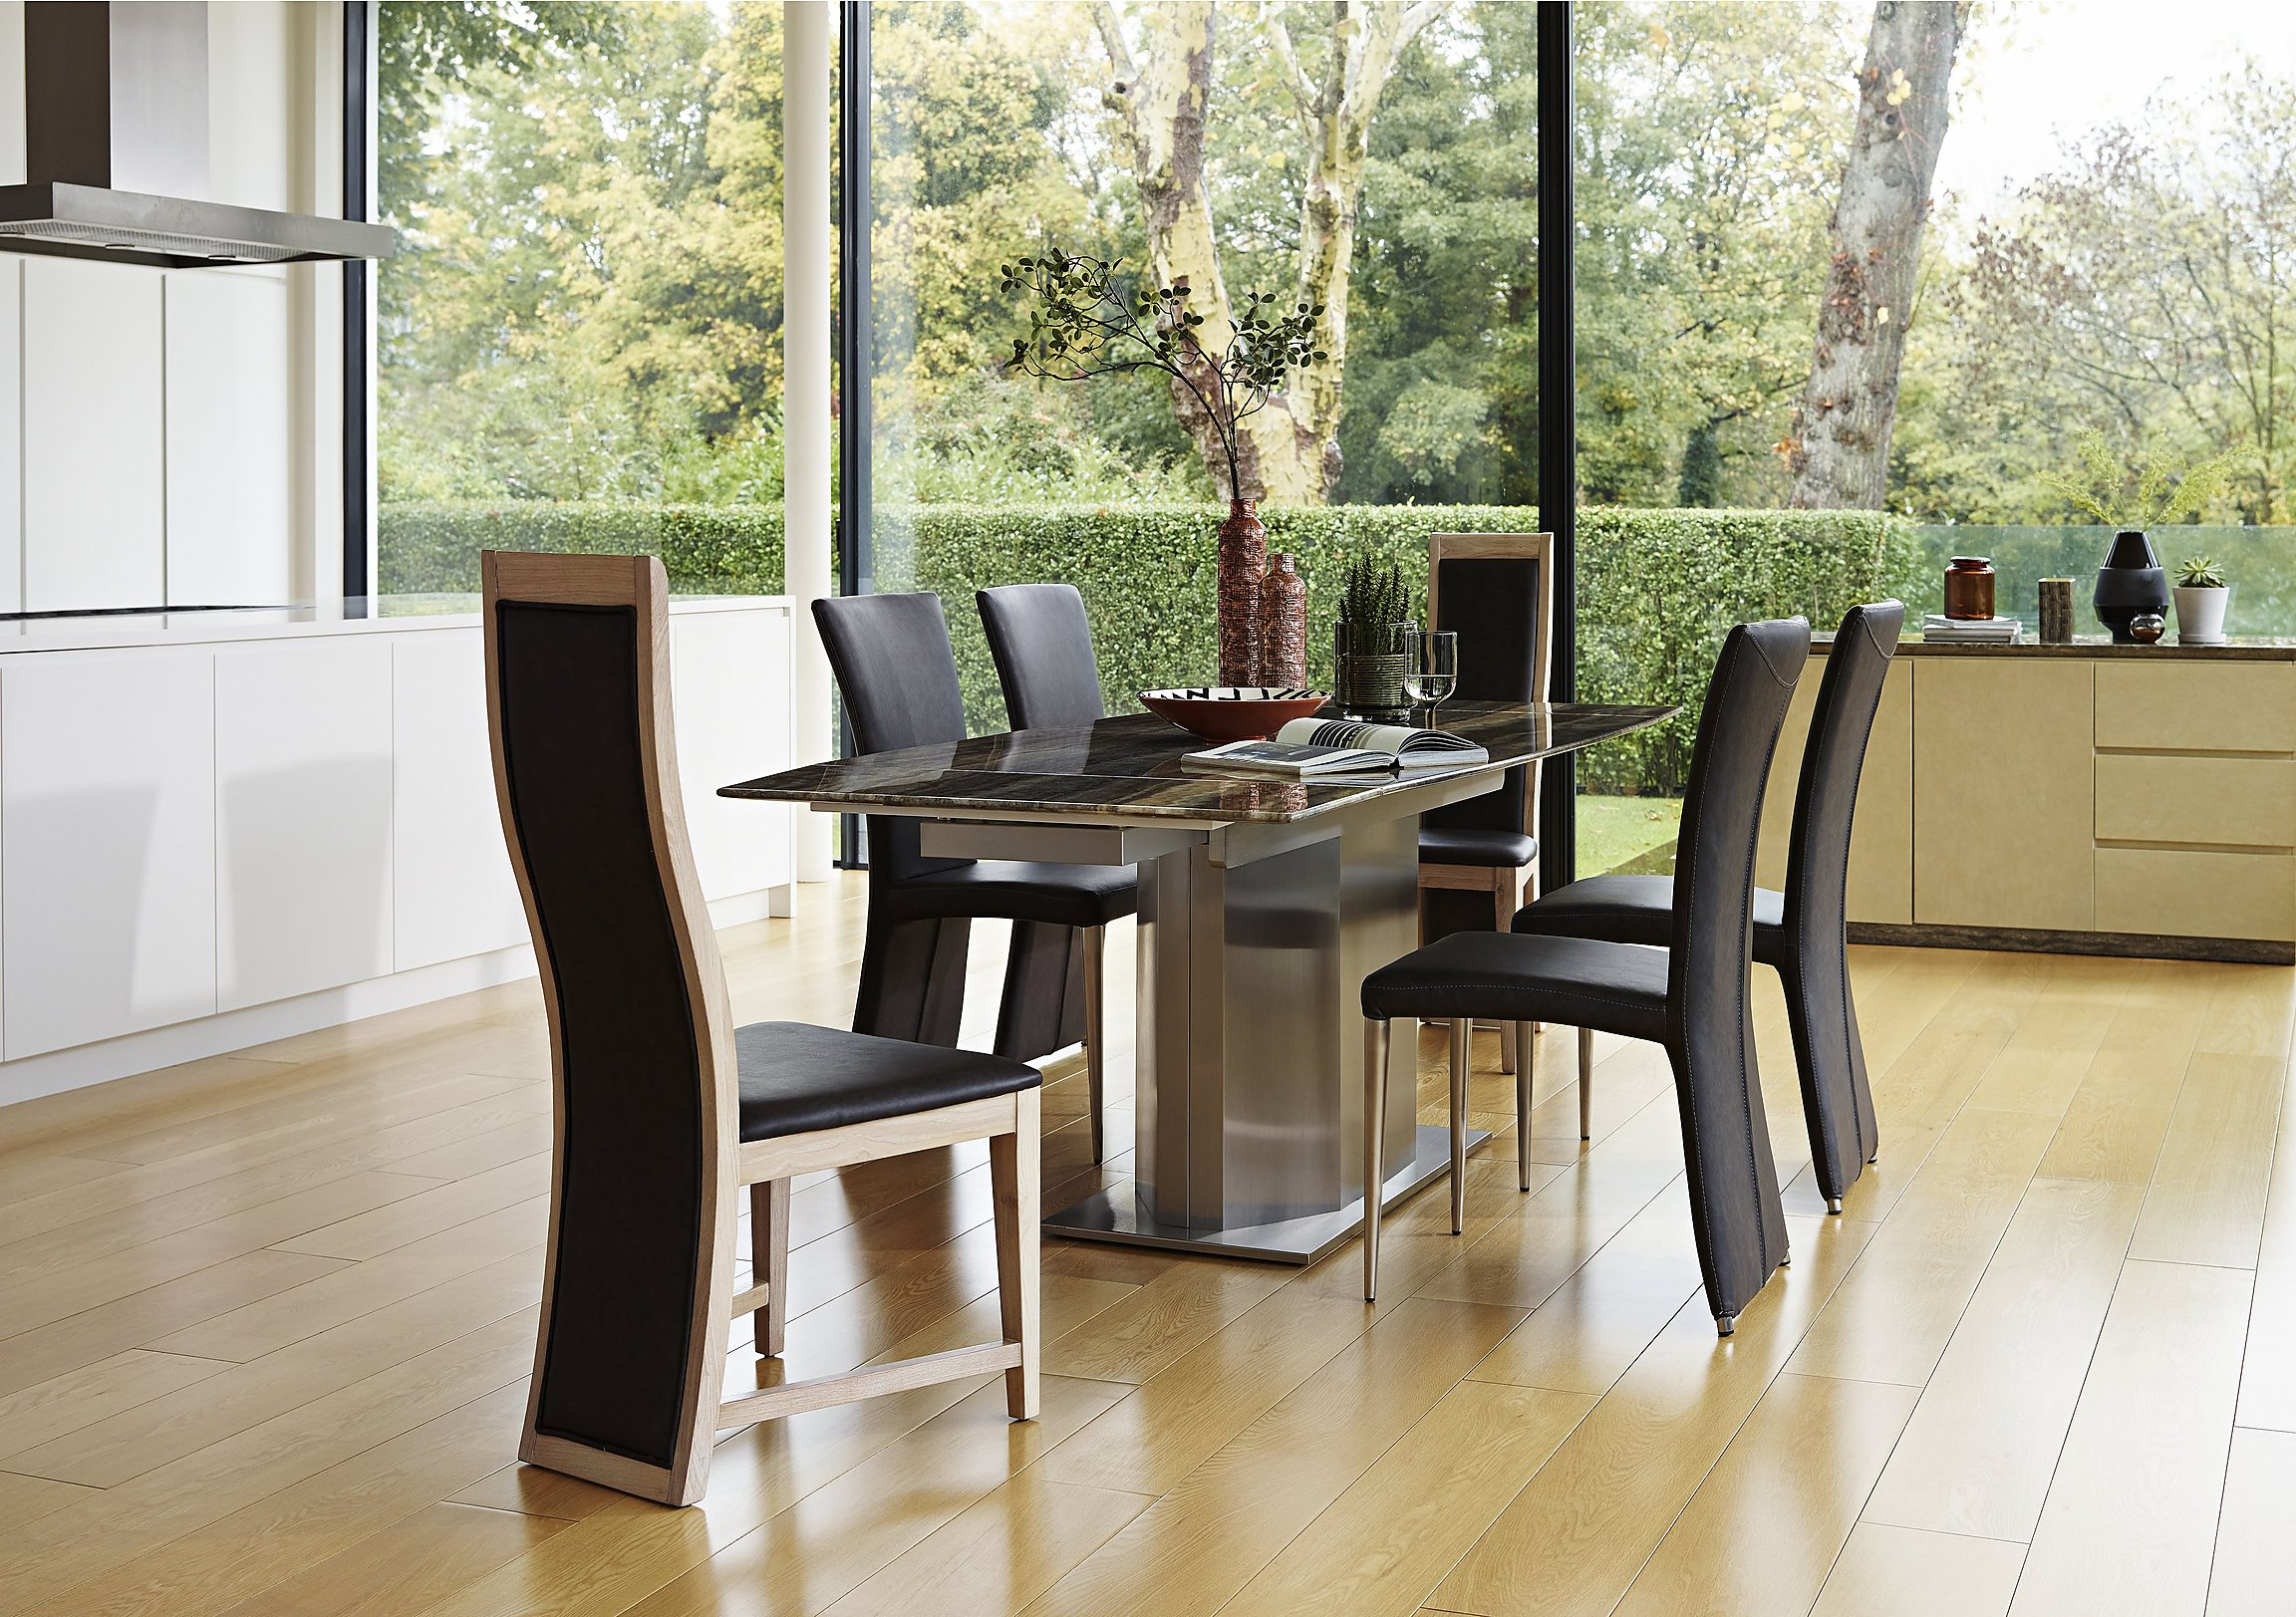 long island extending dining table - Extending Dining Table And Chairs